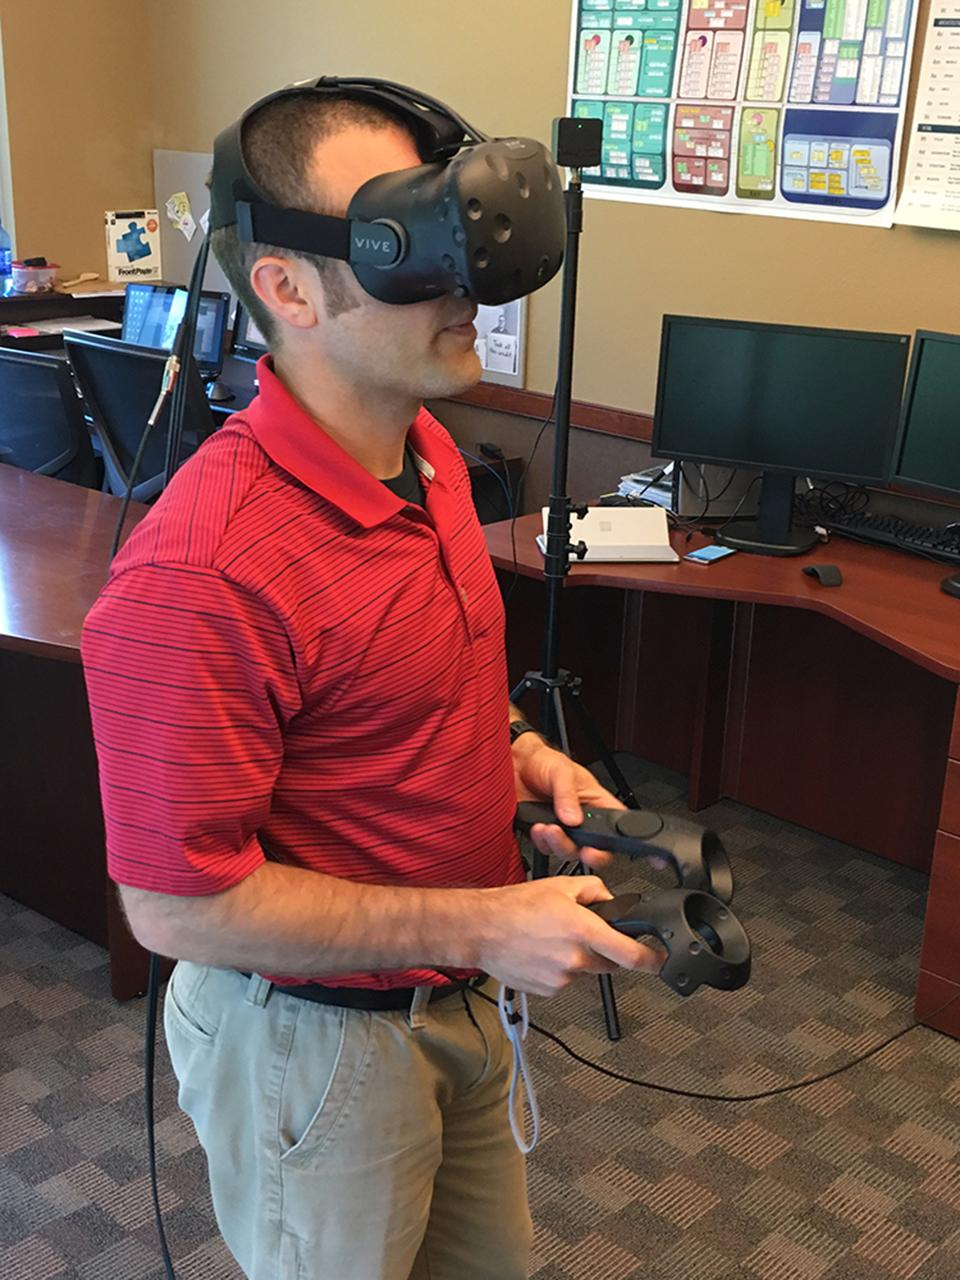 Rob testing the new vr rig.